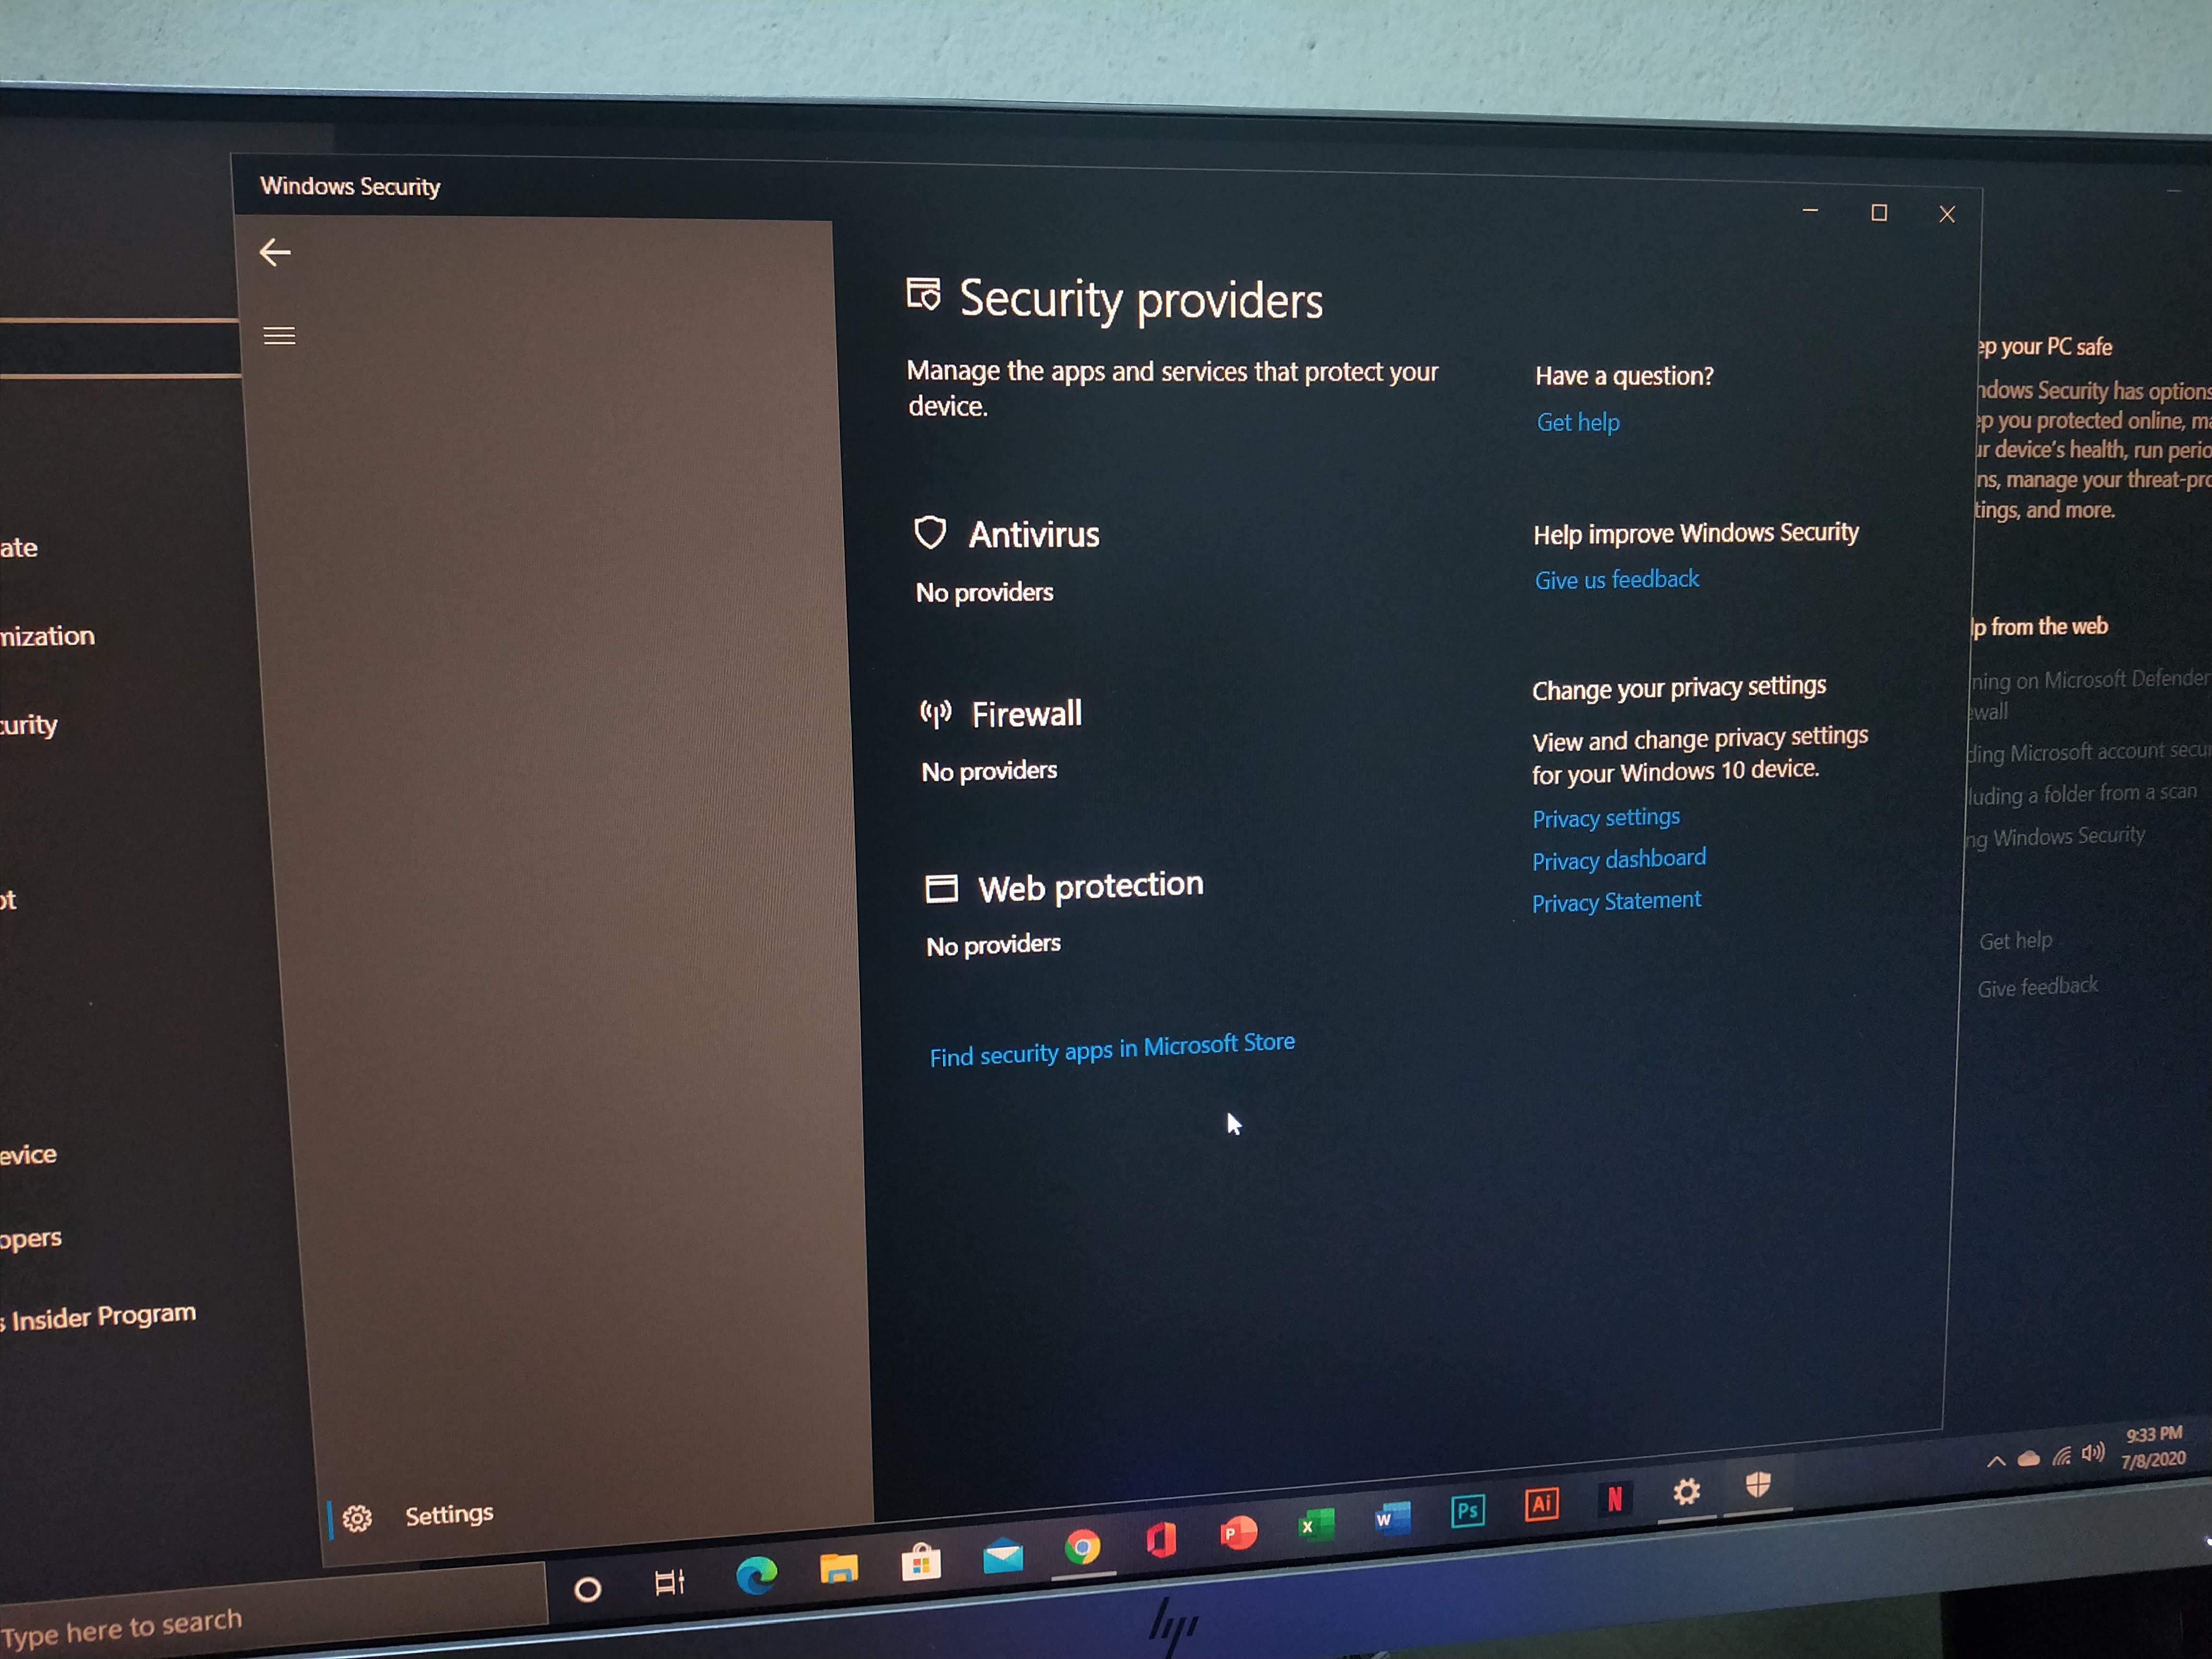 My windows 10 security settings don't appear. - Microsoft Community